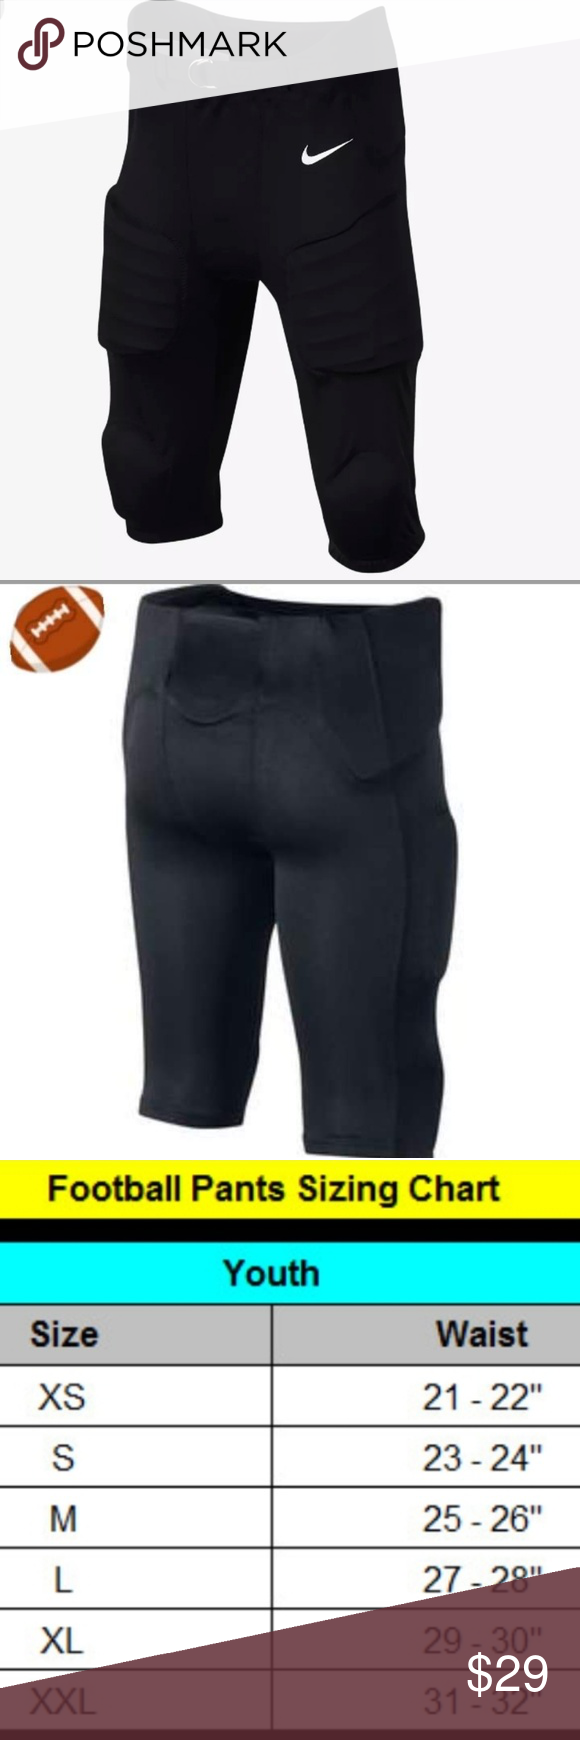 mejor online venta de descuento genuino mejor calificado Nike Boys Football Padded Pants NWT | Football pants, Football pads,  Football boys